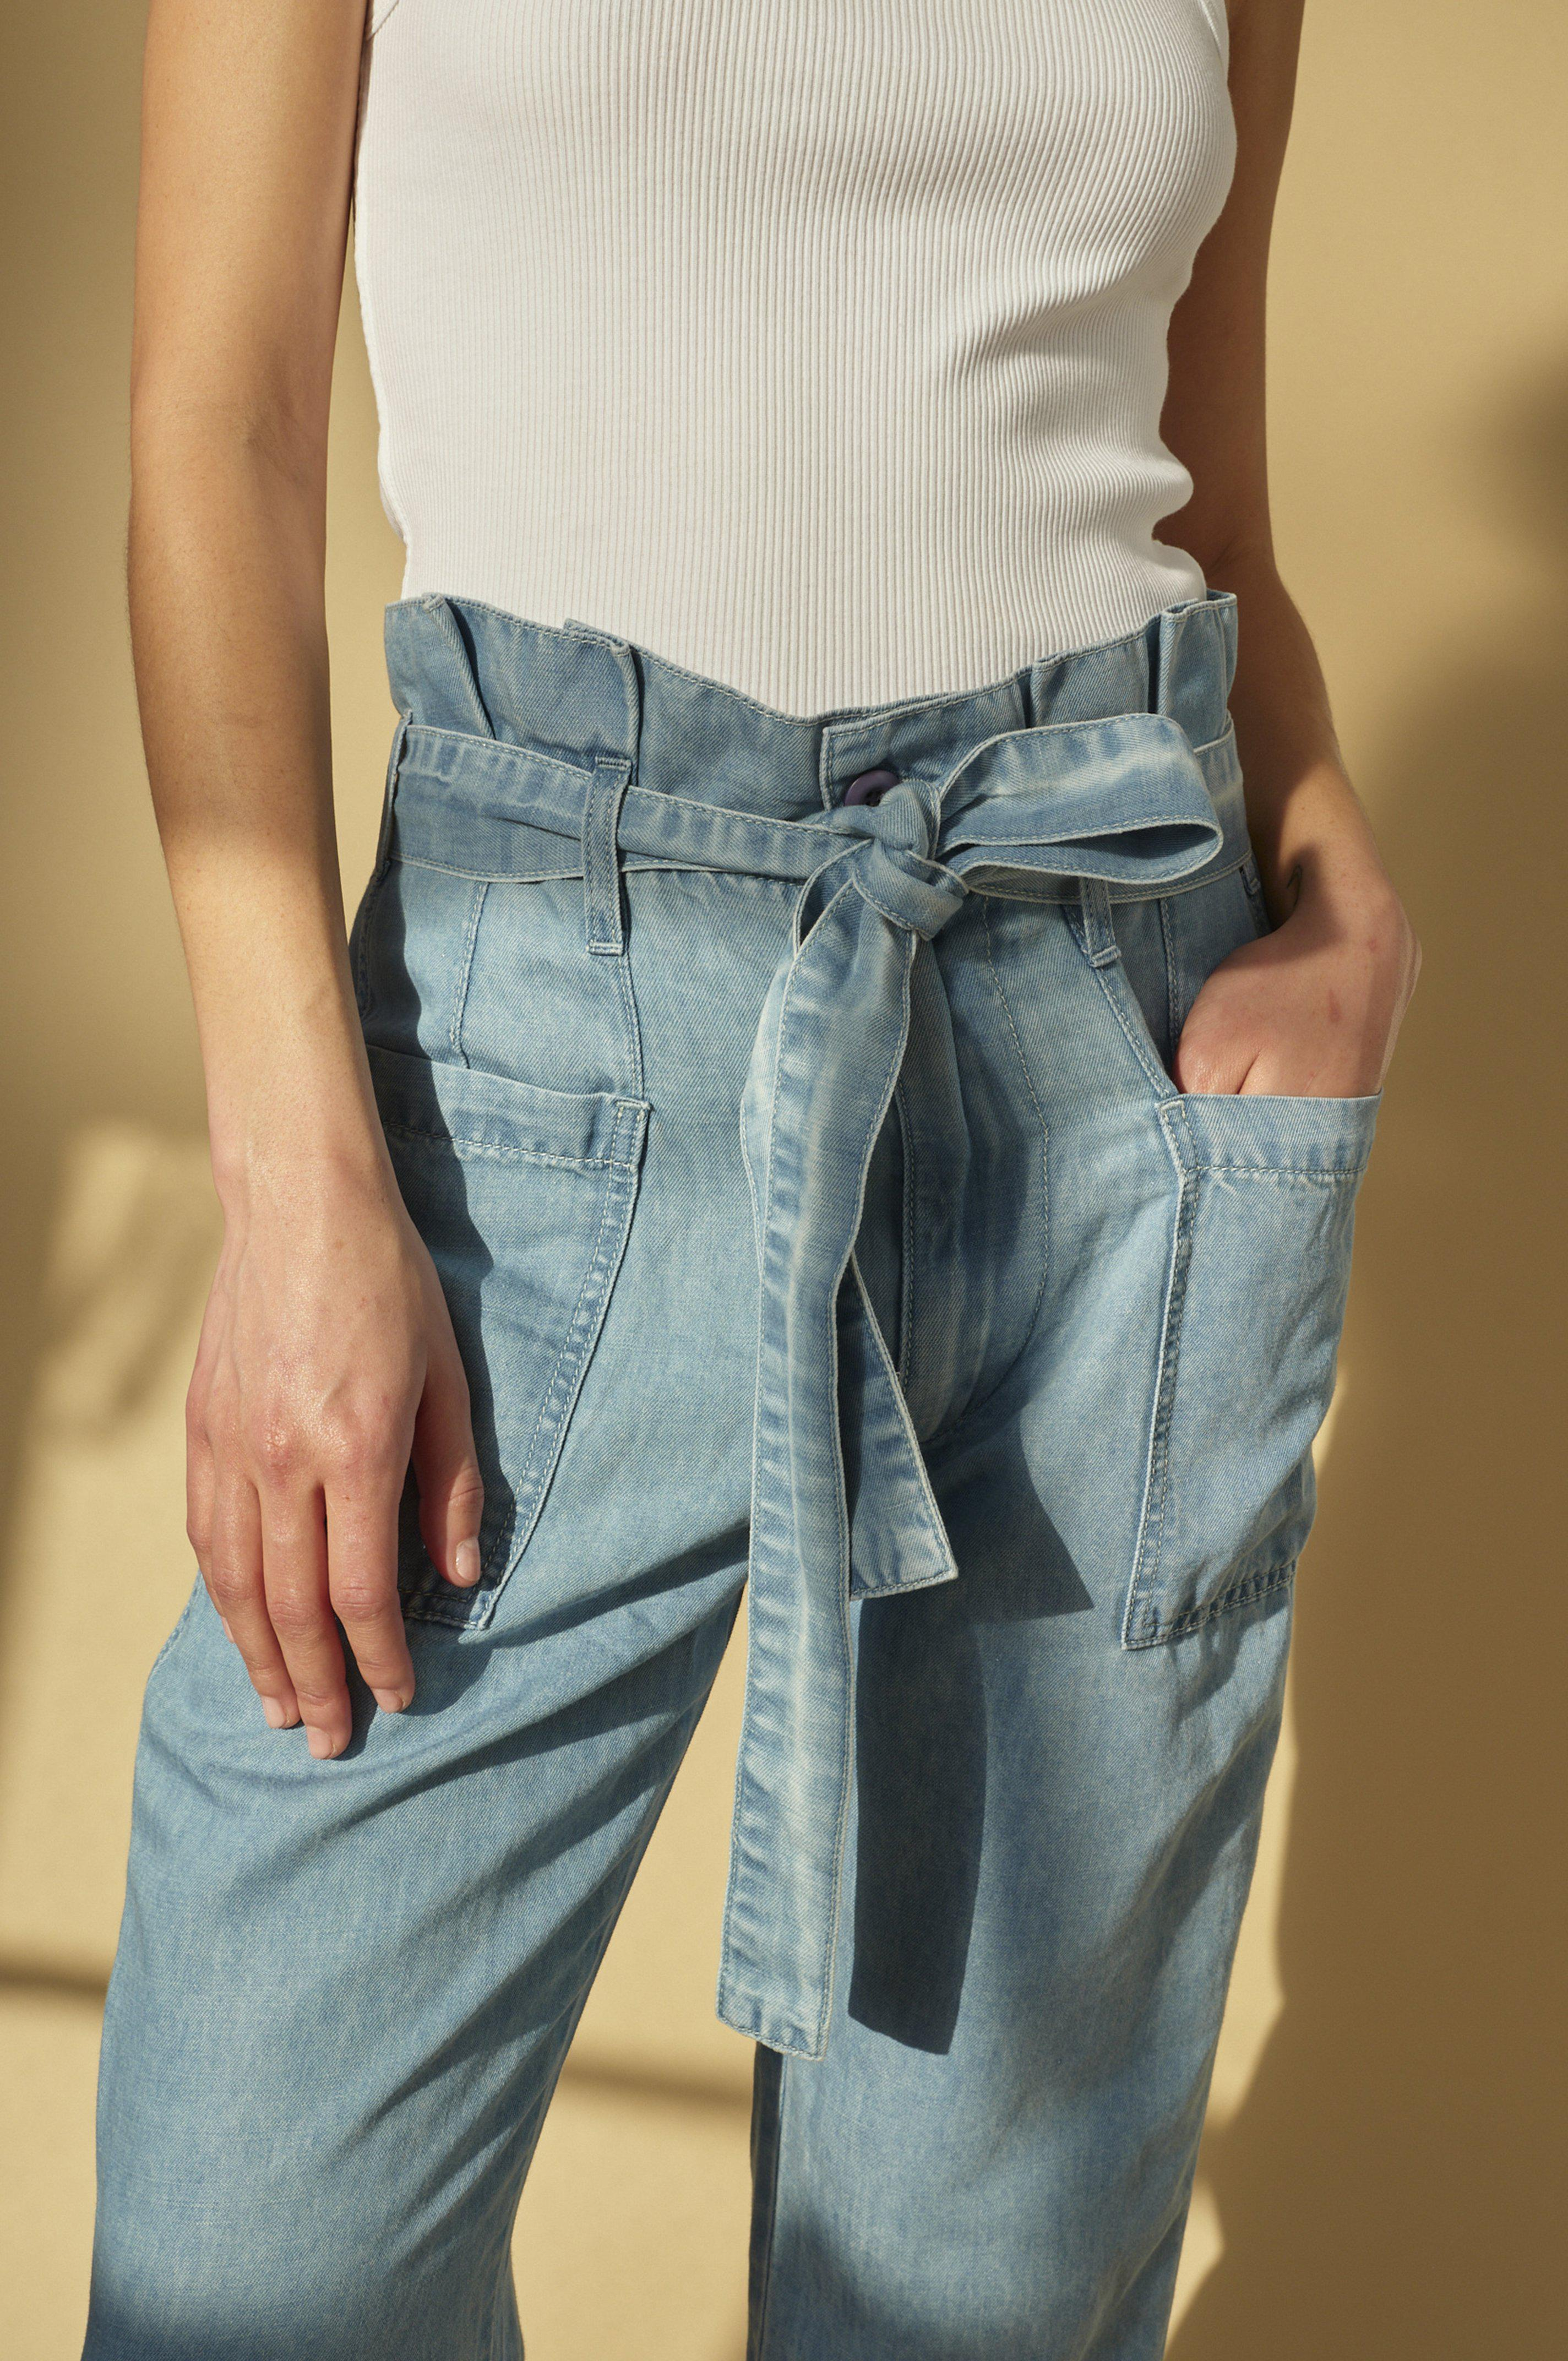 UTILITY PANT LUCKY CHARM 3